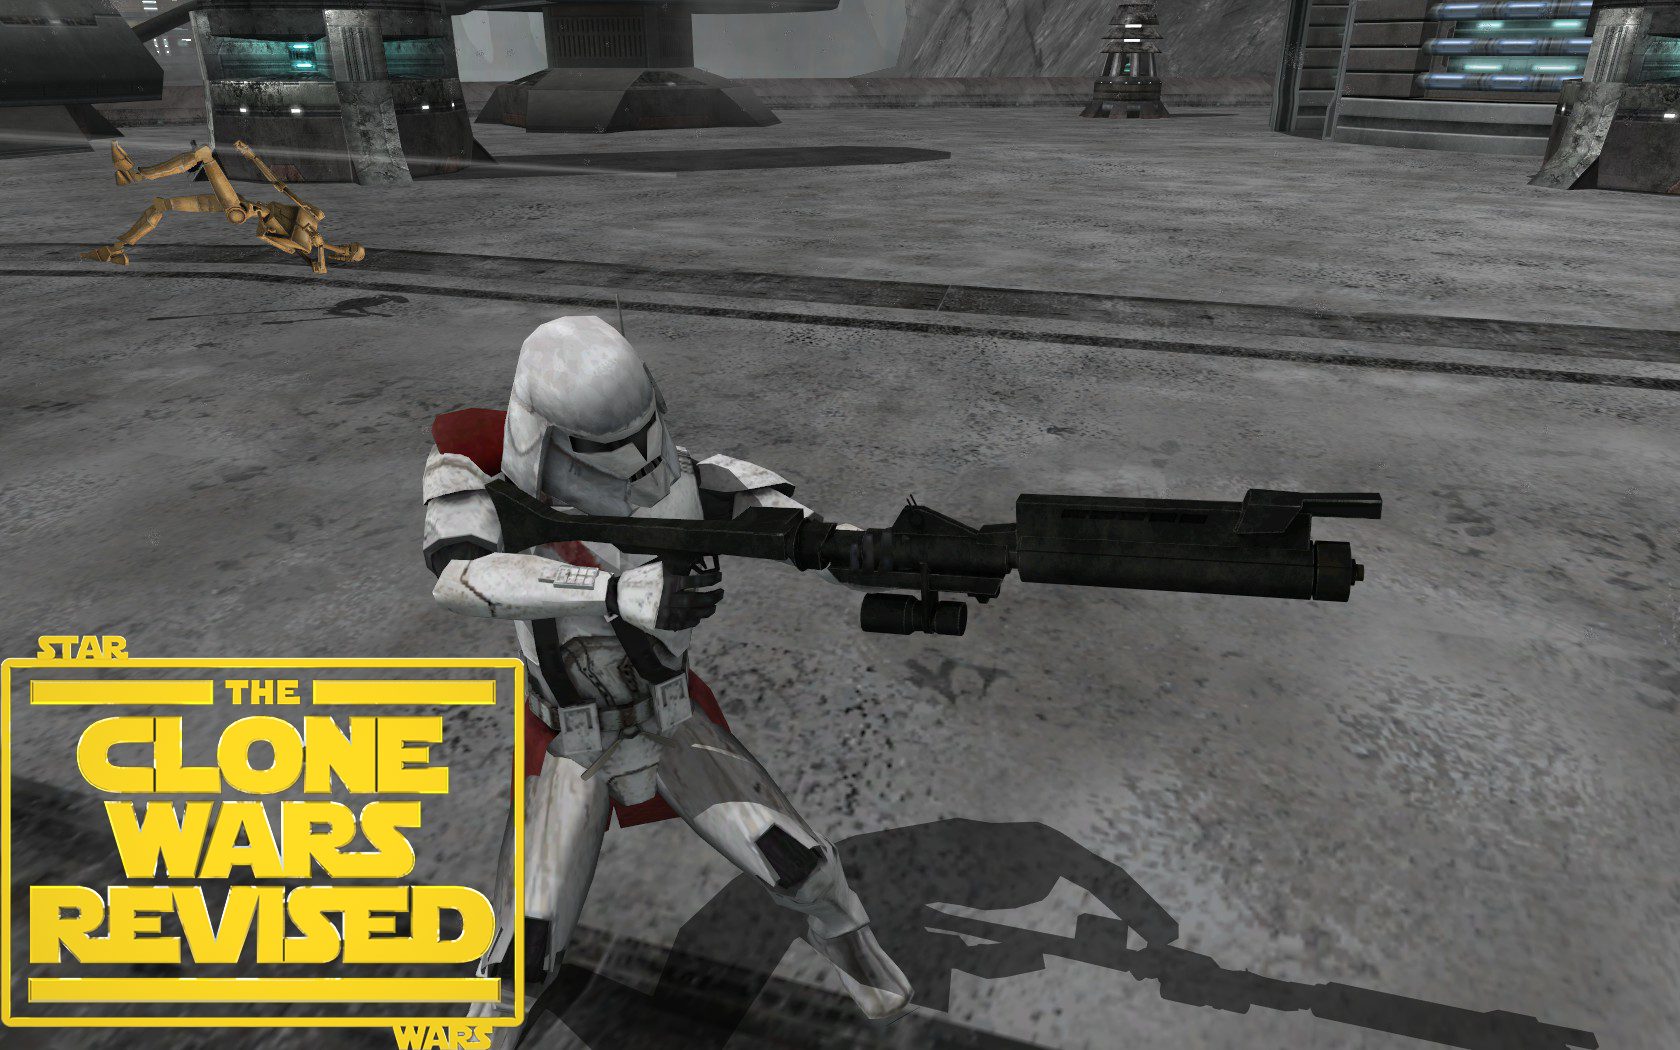 New DC 15A Blaster Rifle image The Clone Wars Revised